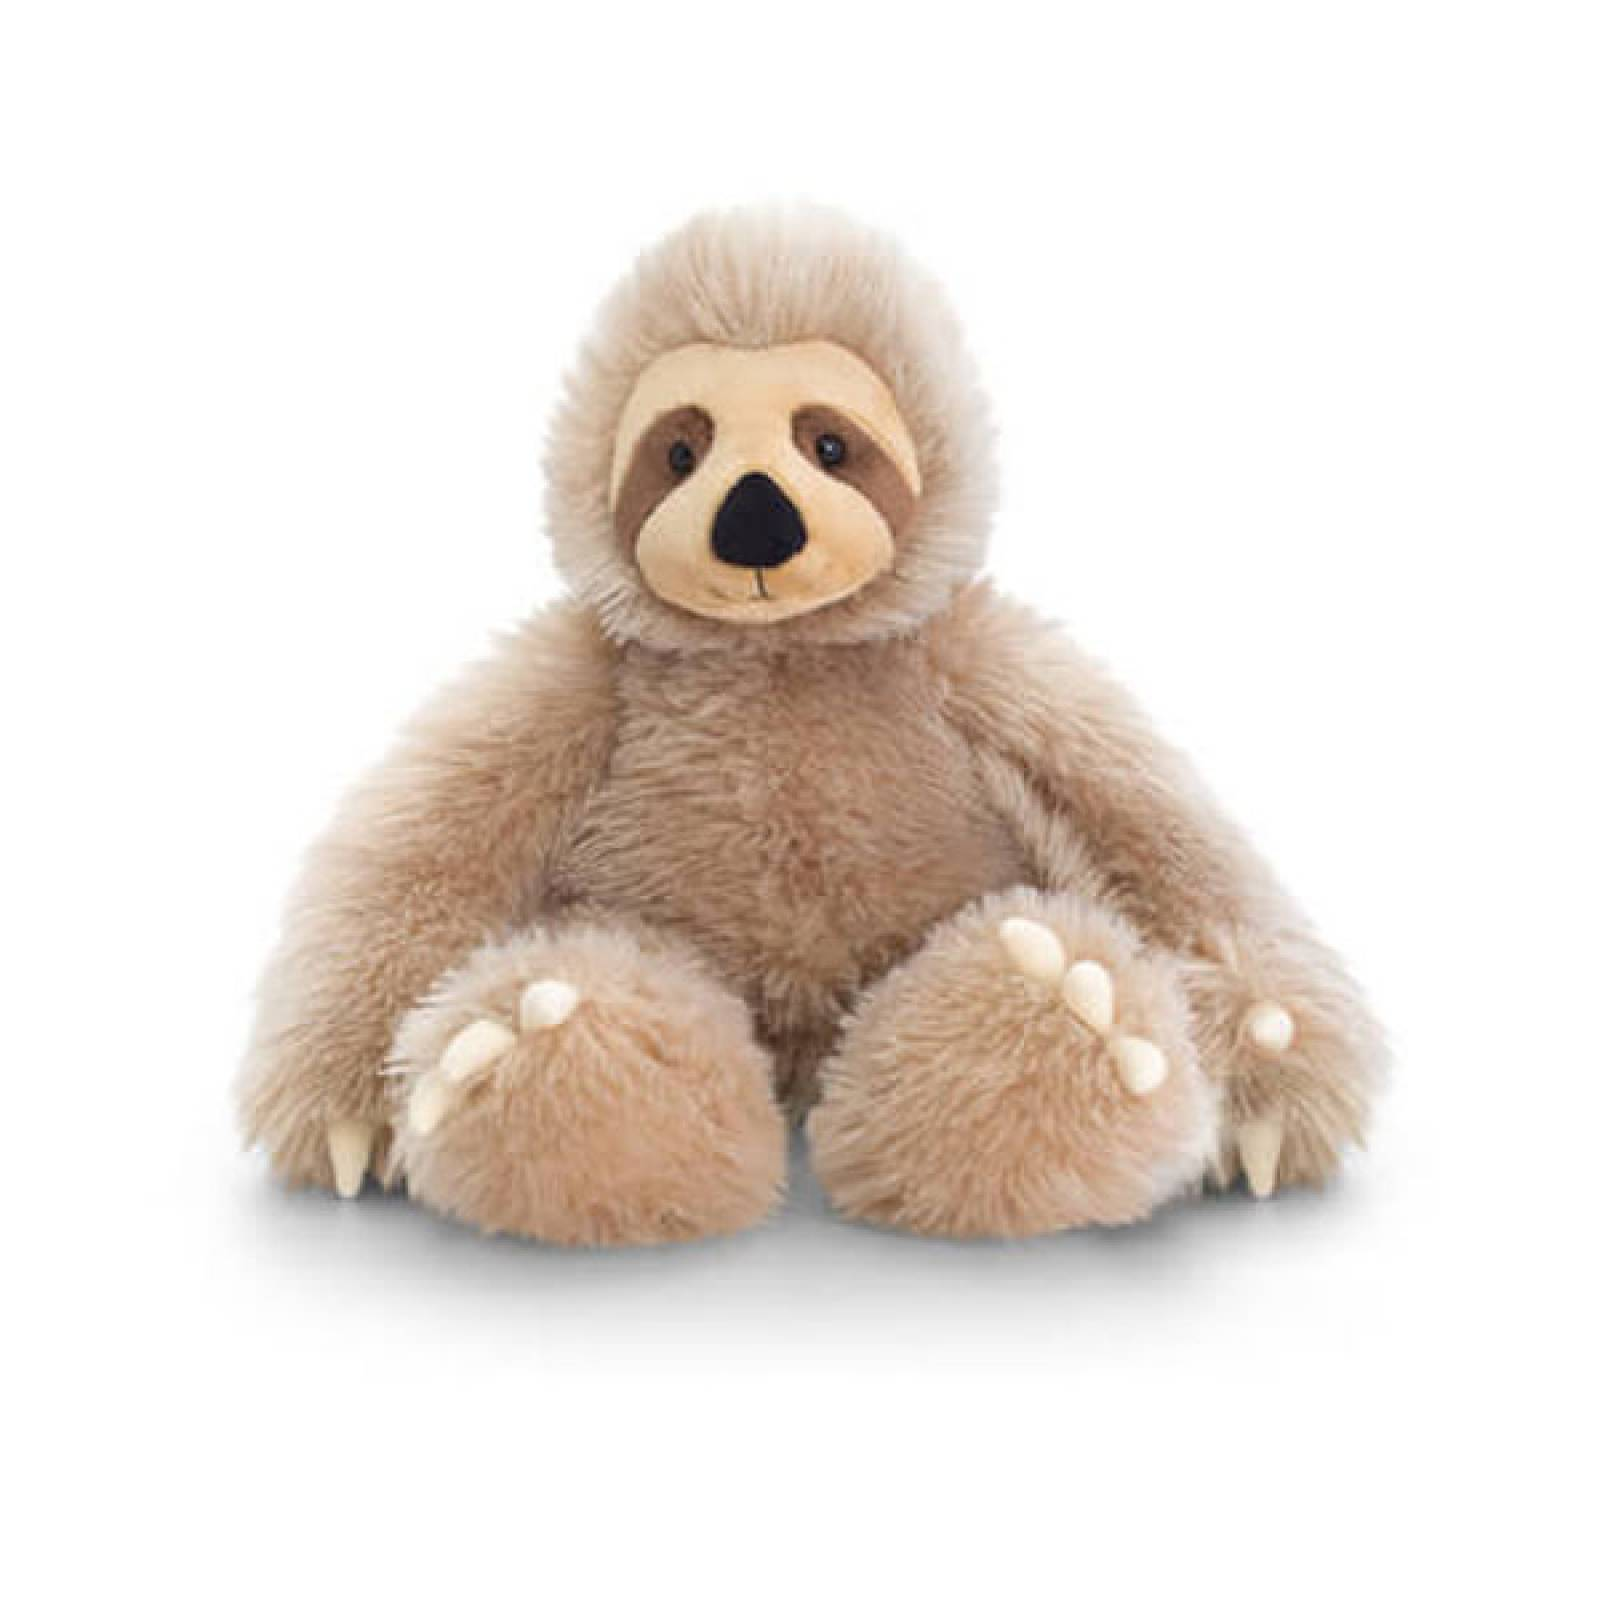 Sloth Soft Toy With Velcro Hands 26cm